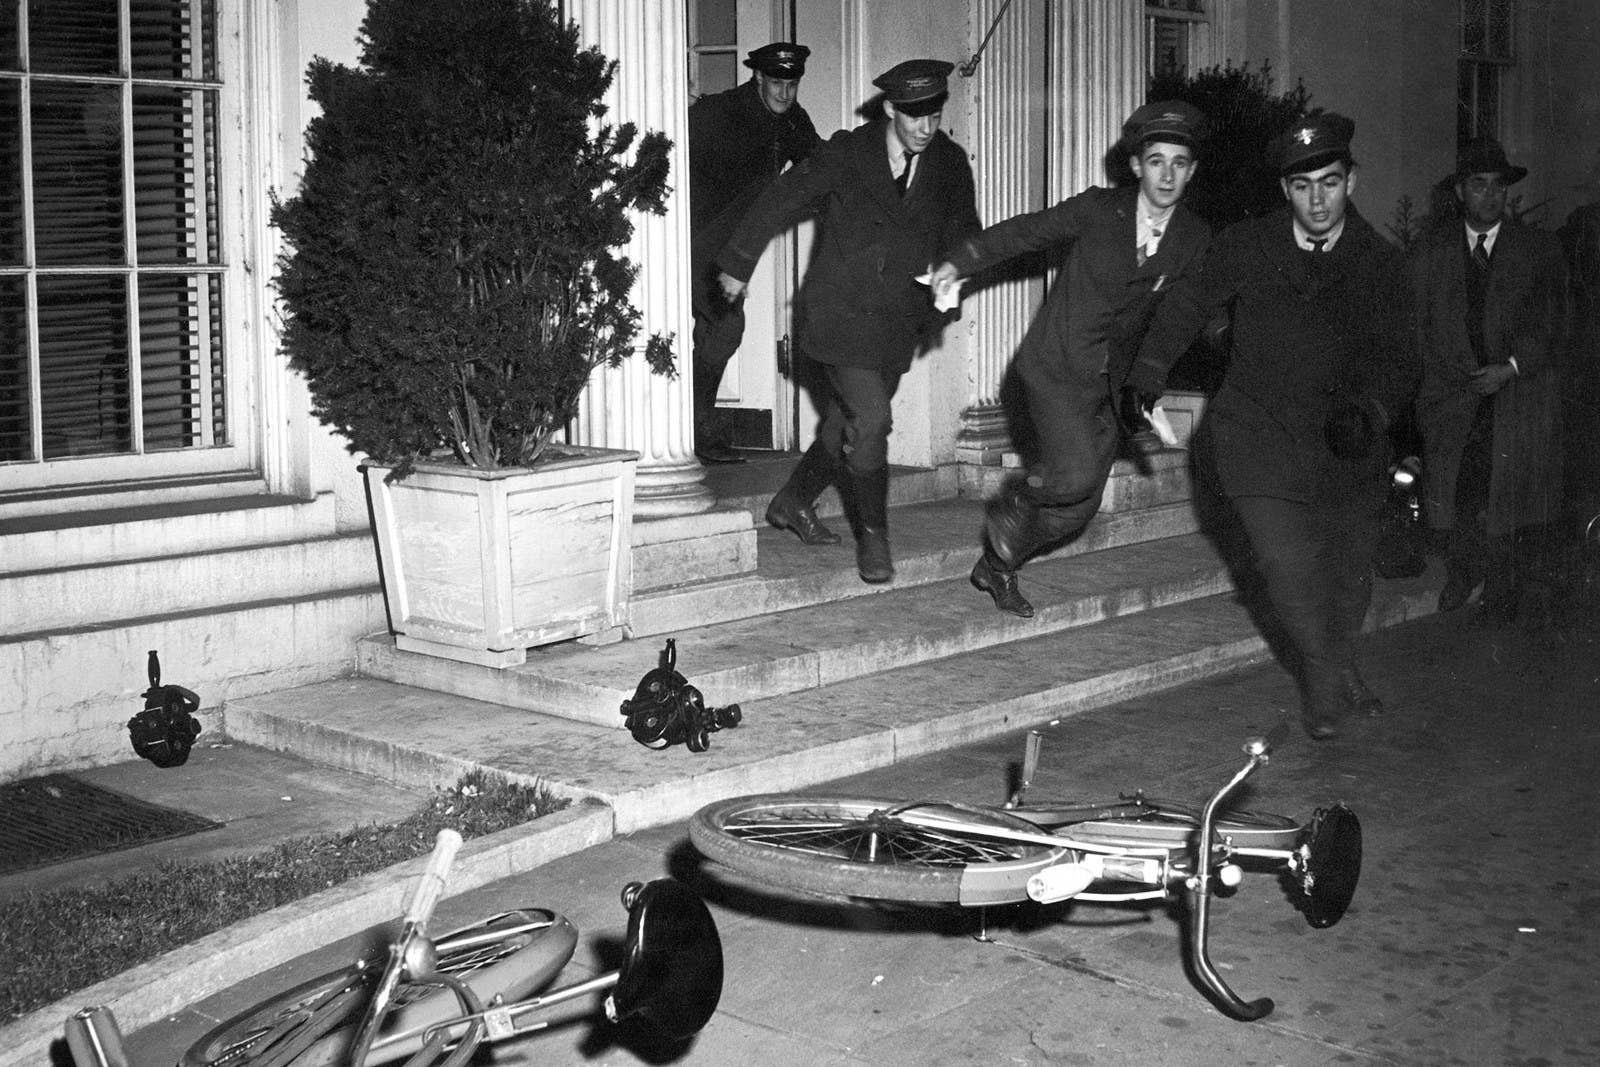 Western Union messengers leave the White House on Dec. 7, 1941, with new information on the Pearl Harbor attack.